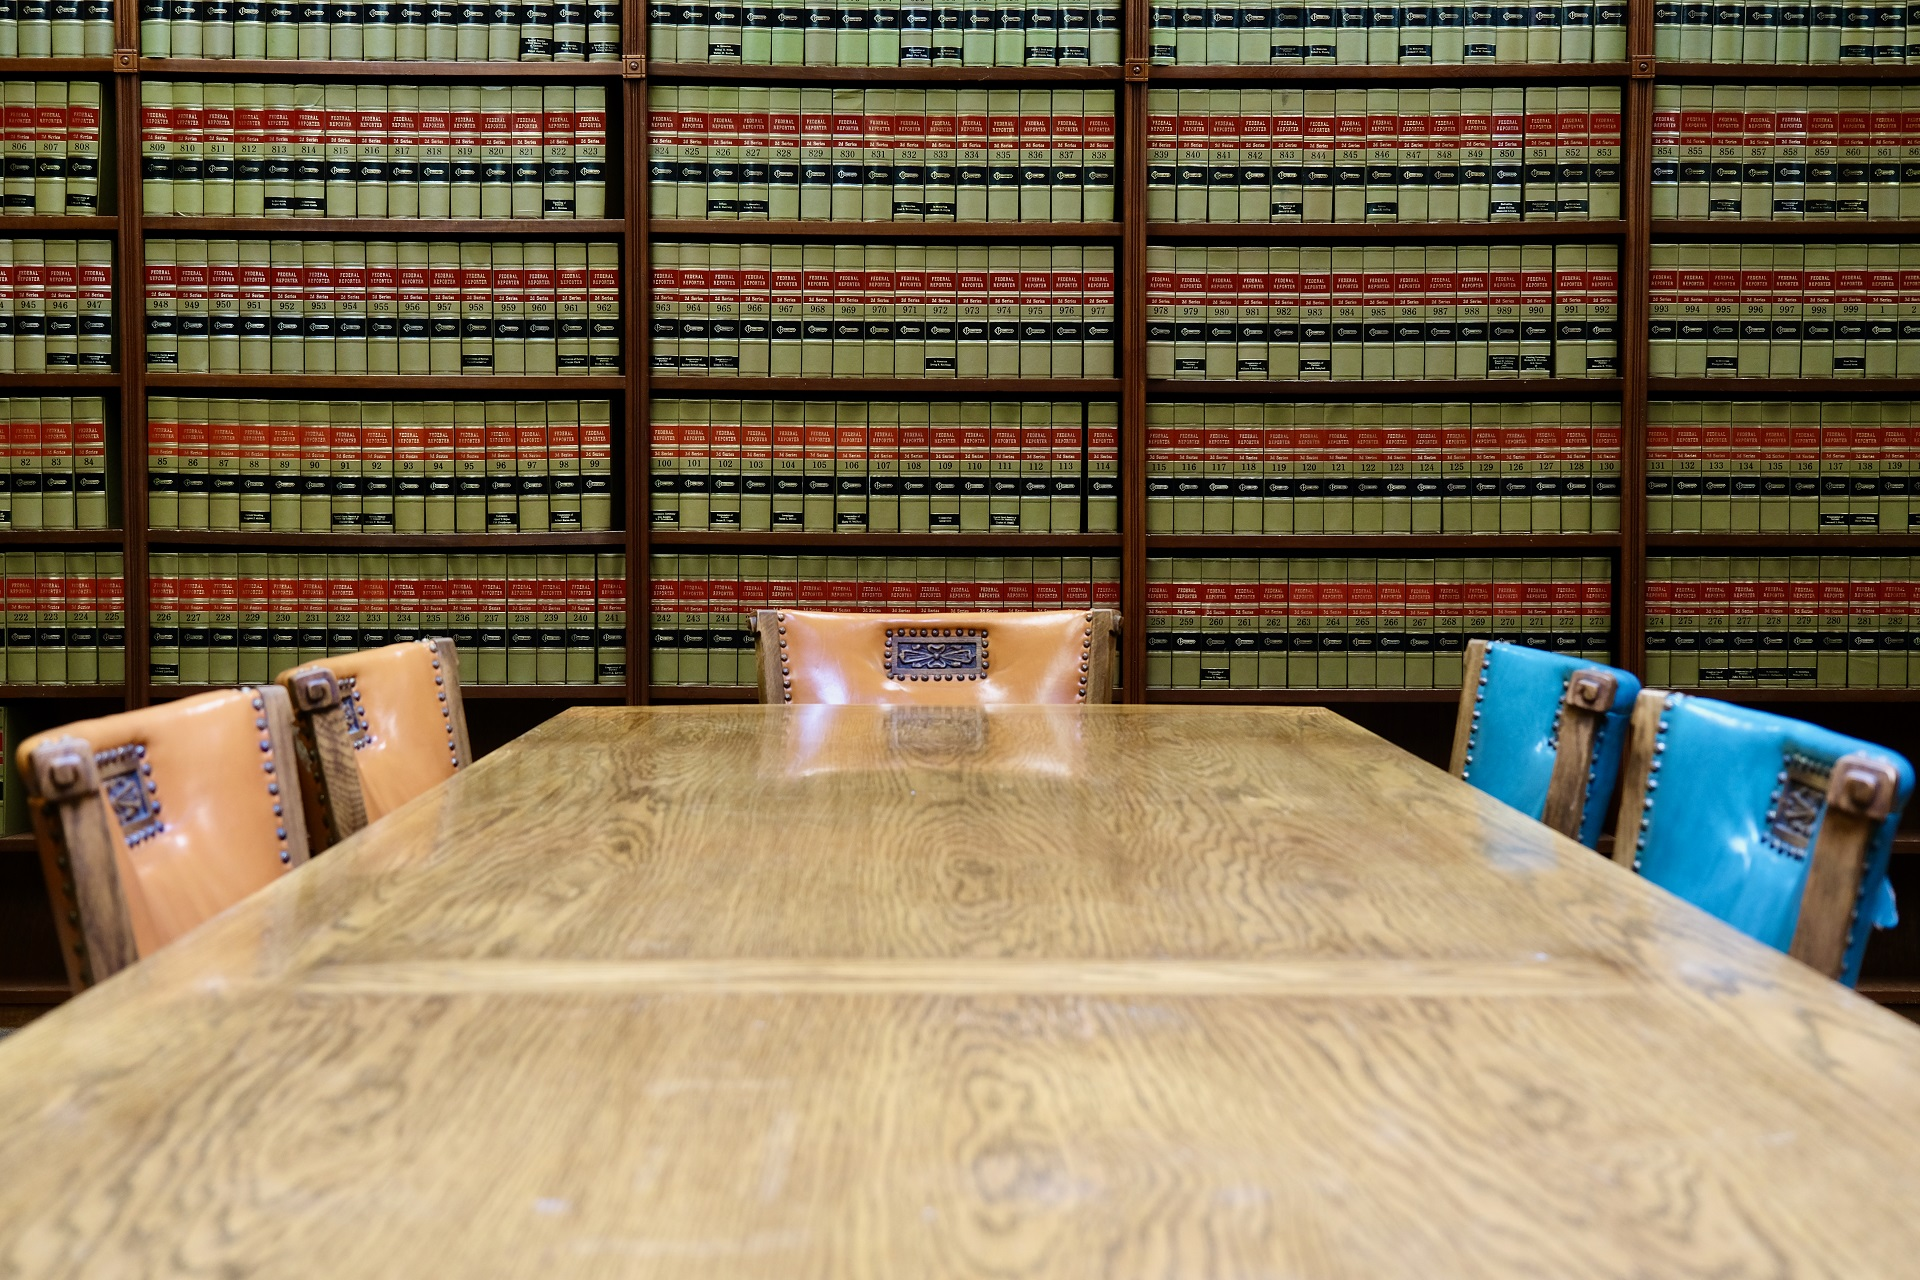 conference table with chairs in front of a wall of law books